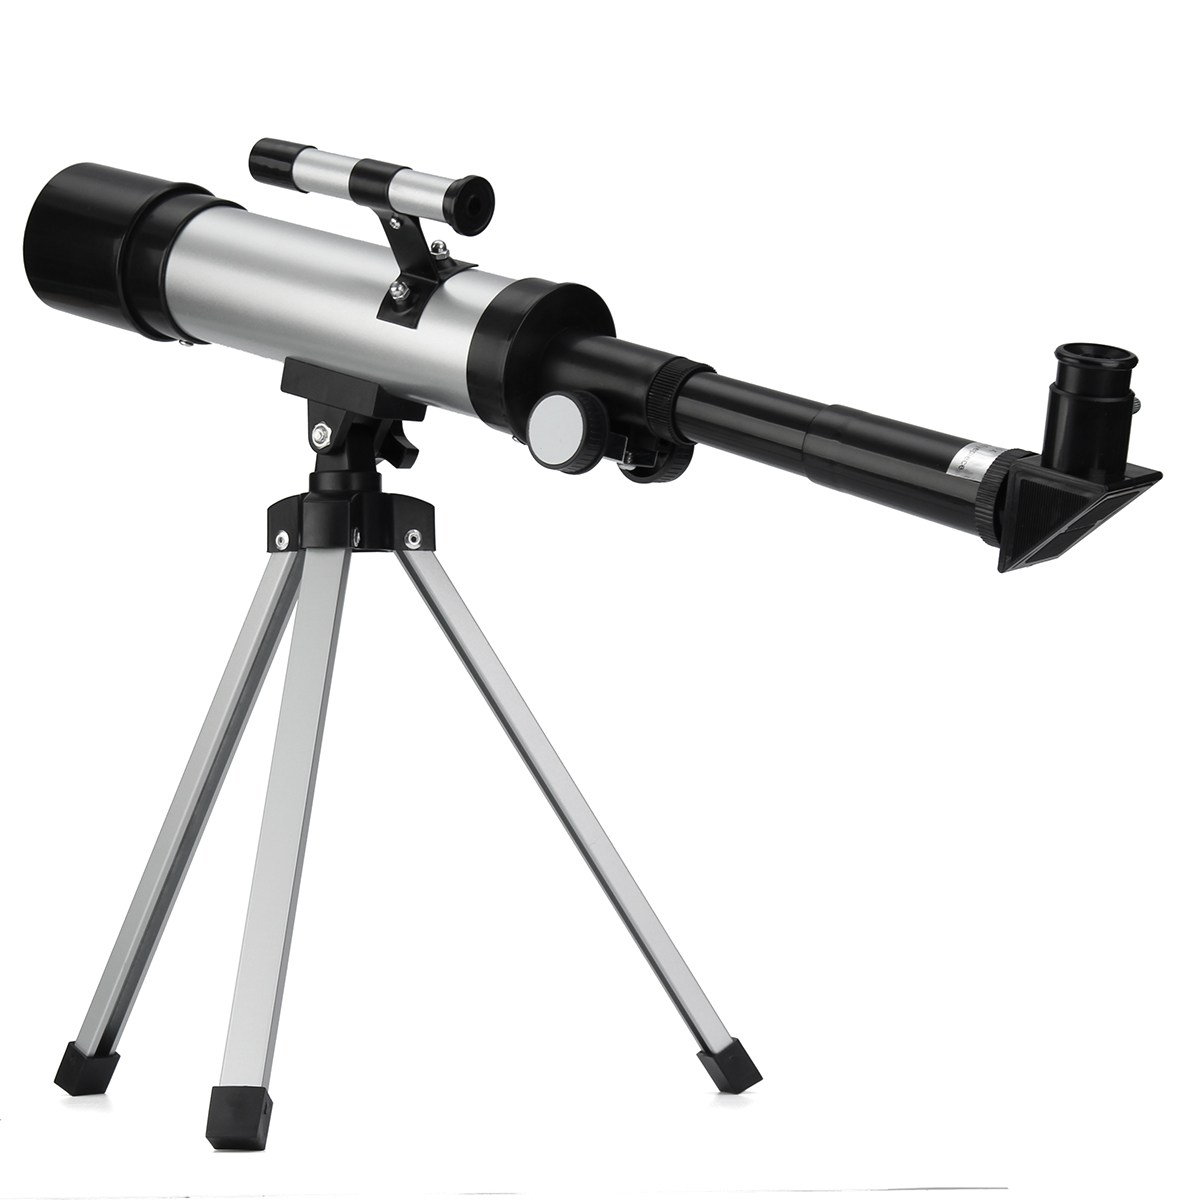 цена на 360x50mm Binoculars Monocular Astronomical Telescope Tube Refractor Monocular telescopic Spotting Scope with Portabale Tripod